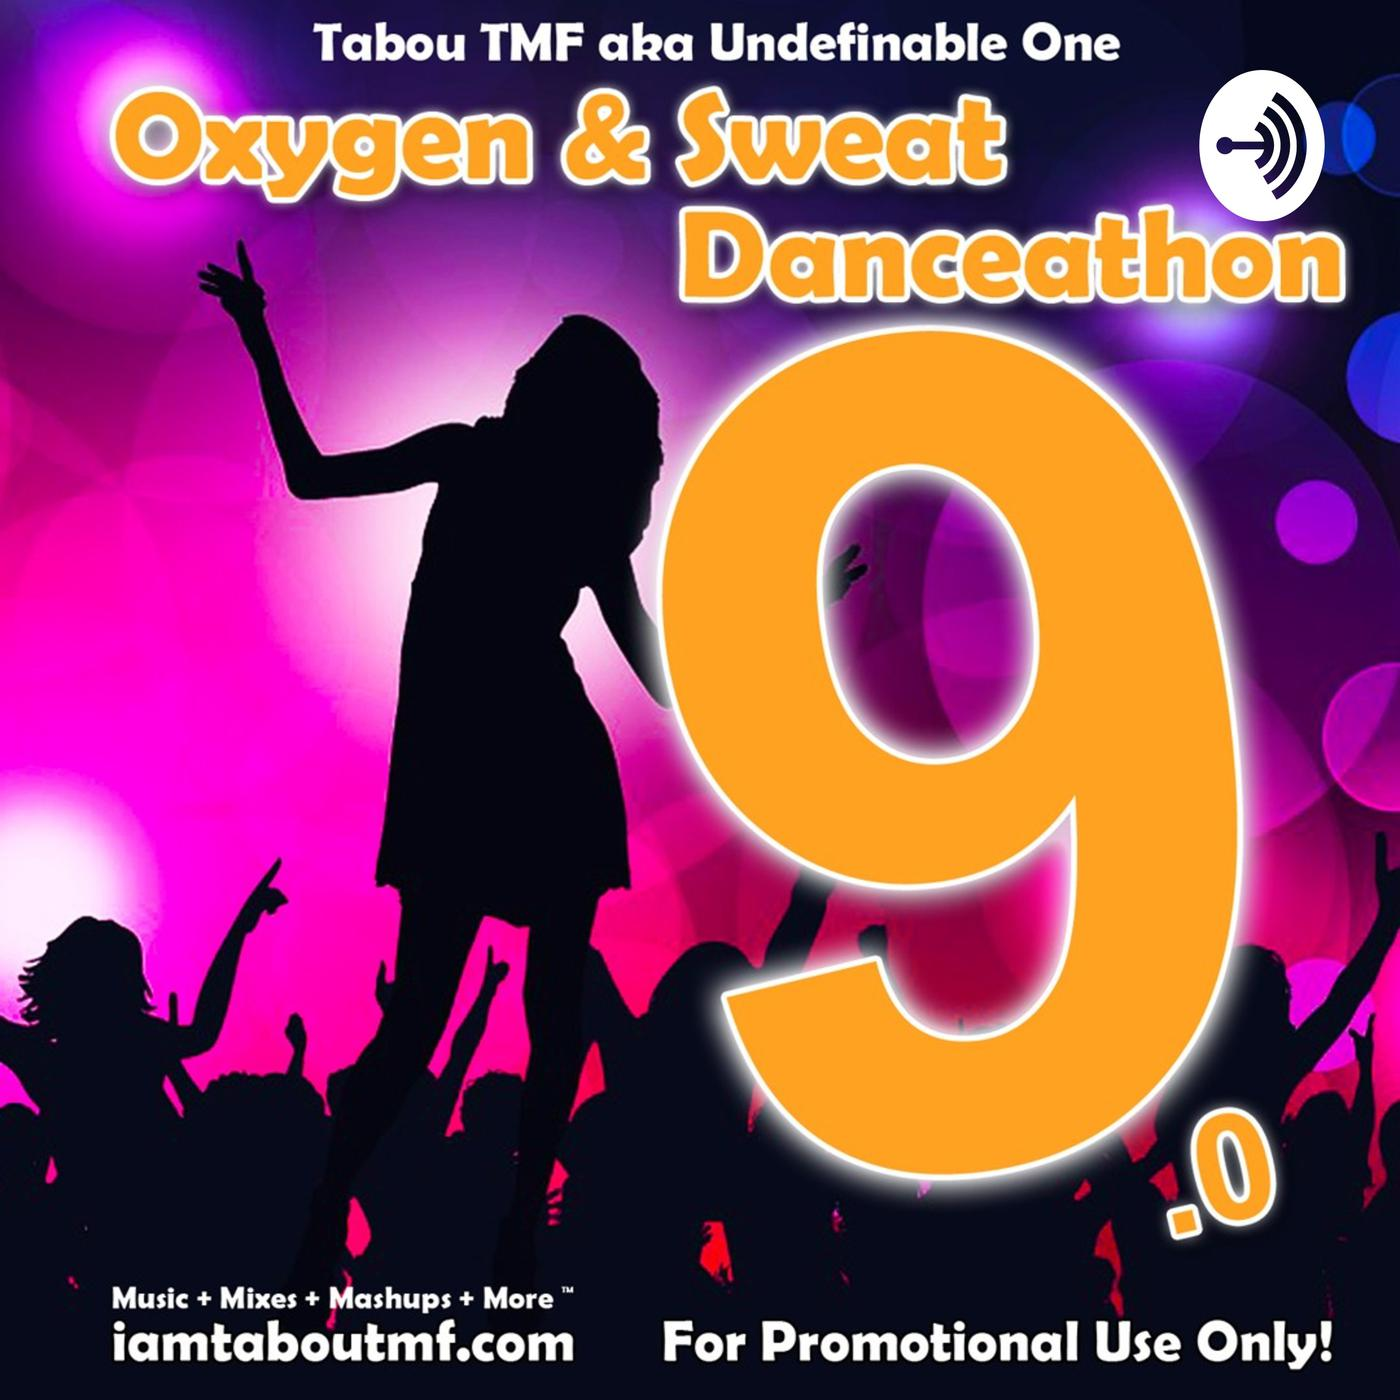 Music + Mixes + Mashups + More ™ by Tabou TMF (podcast